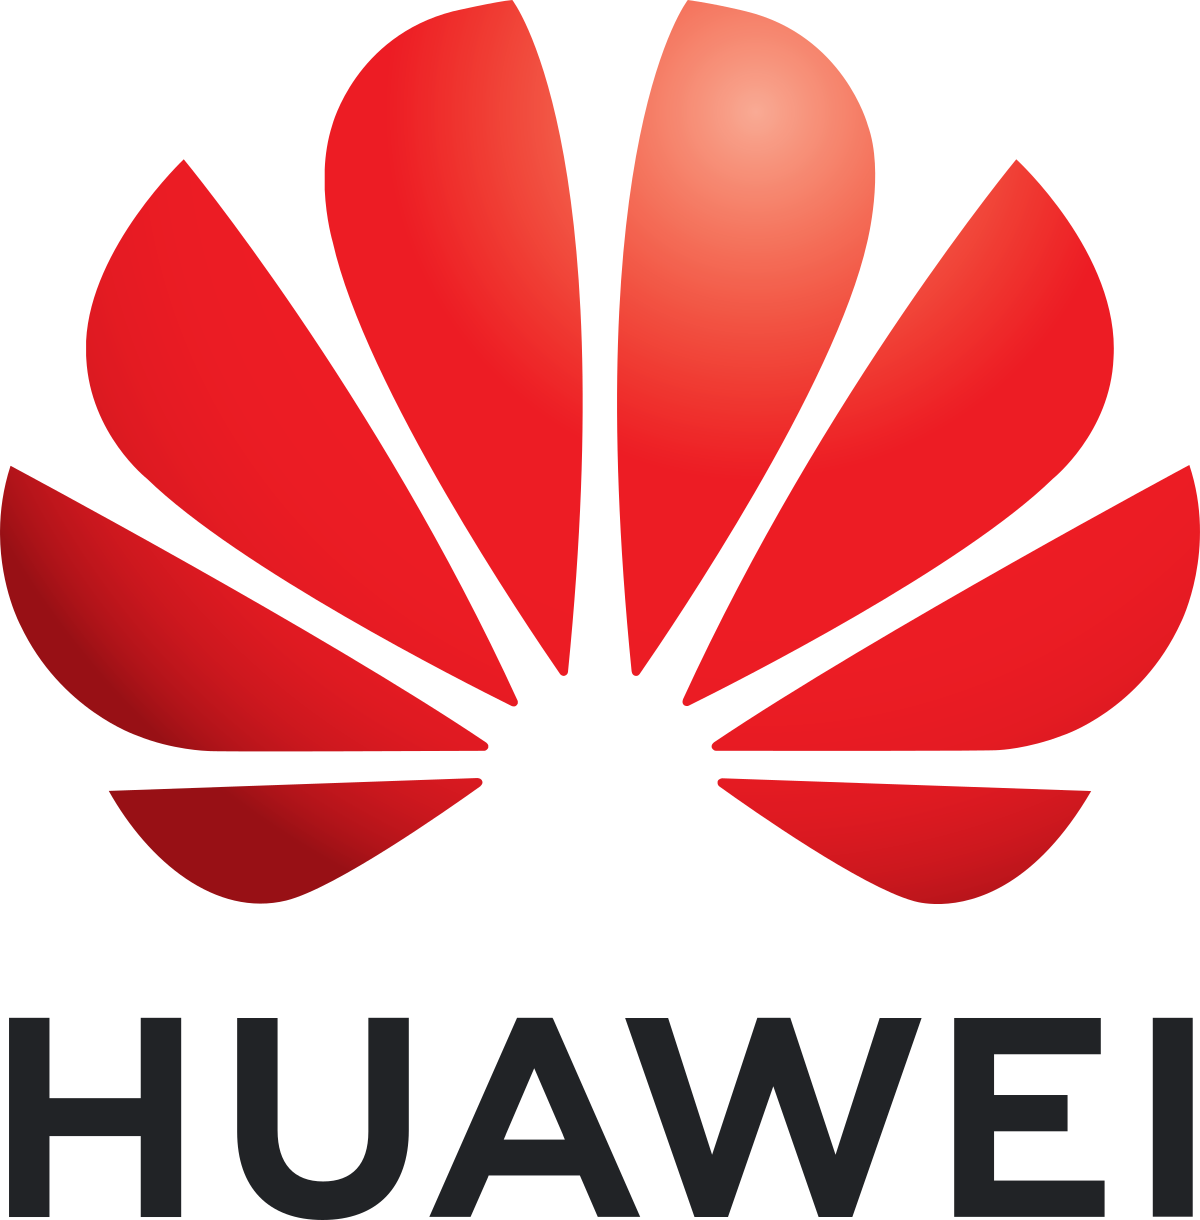 Photo of Huawei and U.S. Affiliate Indicted for Theft of Trade Secrets, Wire Fraud, Obstruction Of Justice | OPA